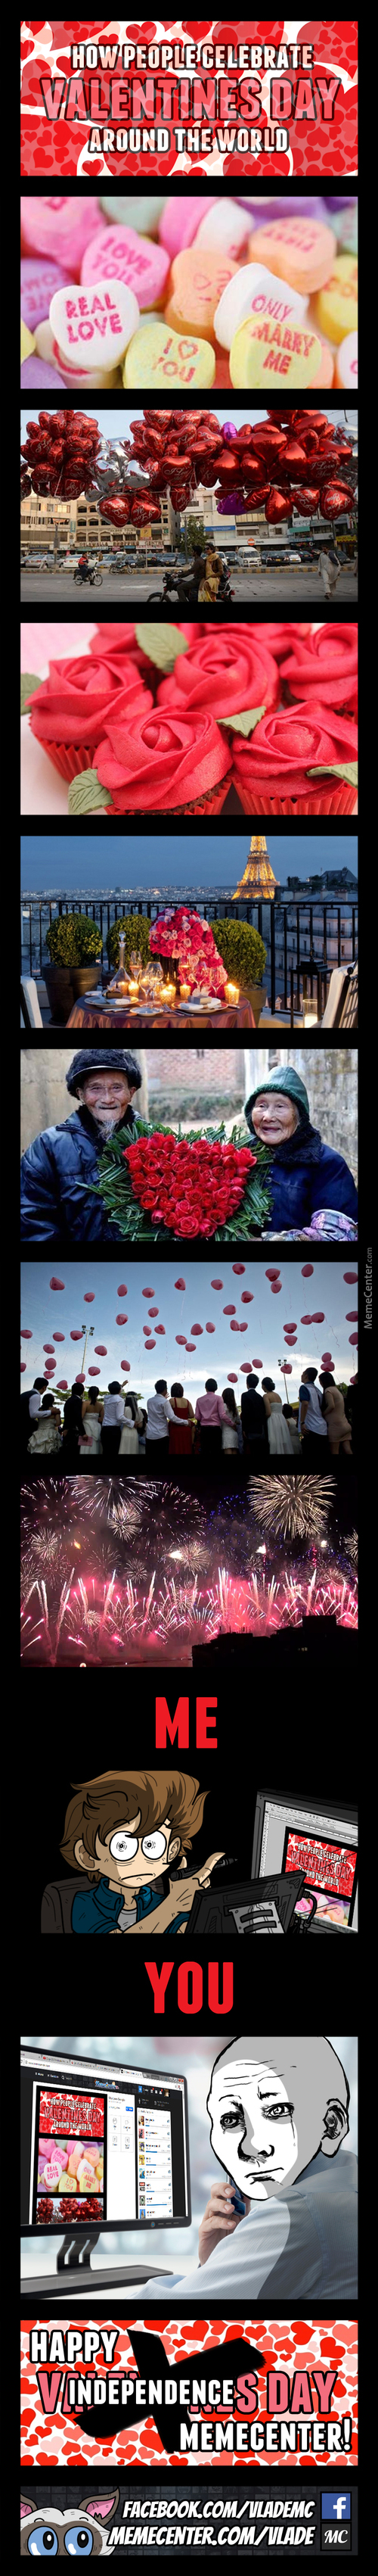 Valentines Day Around The World